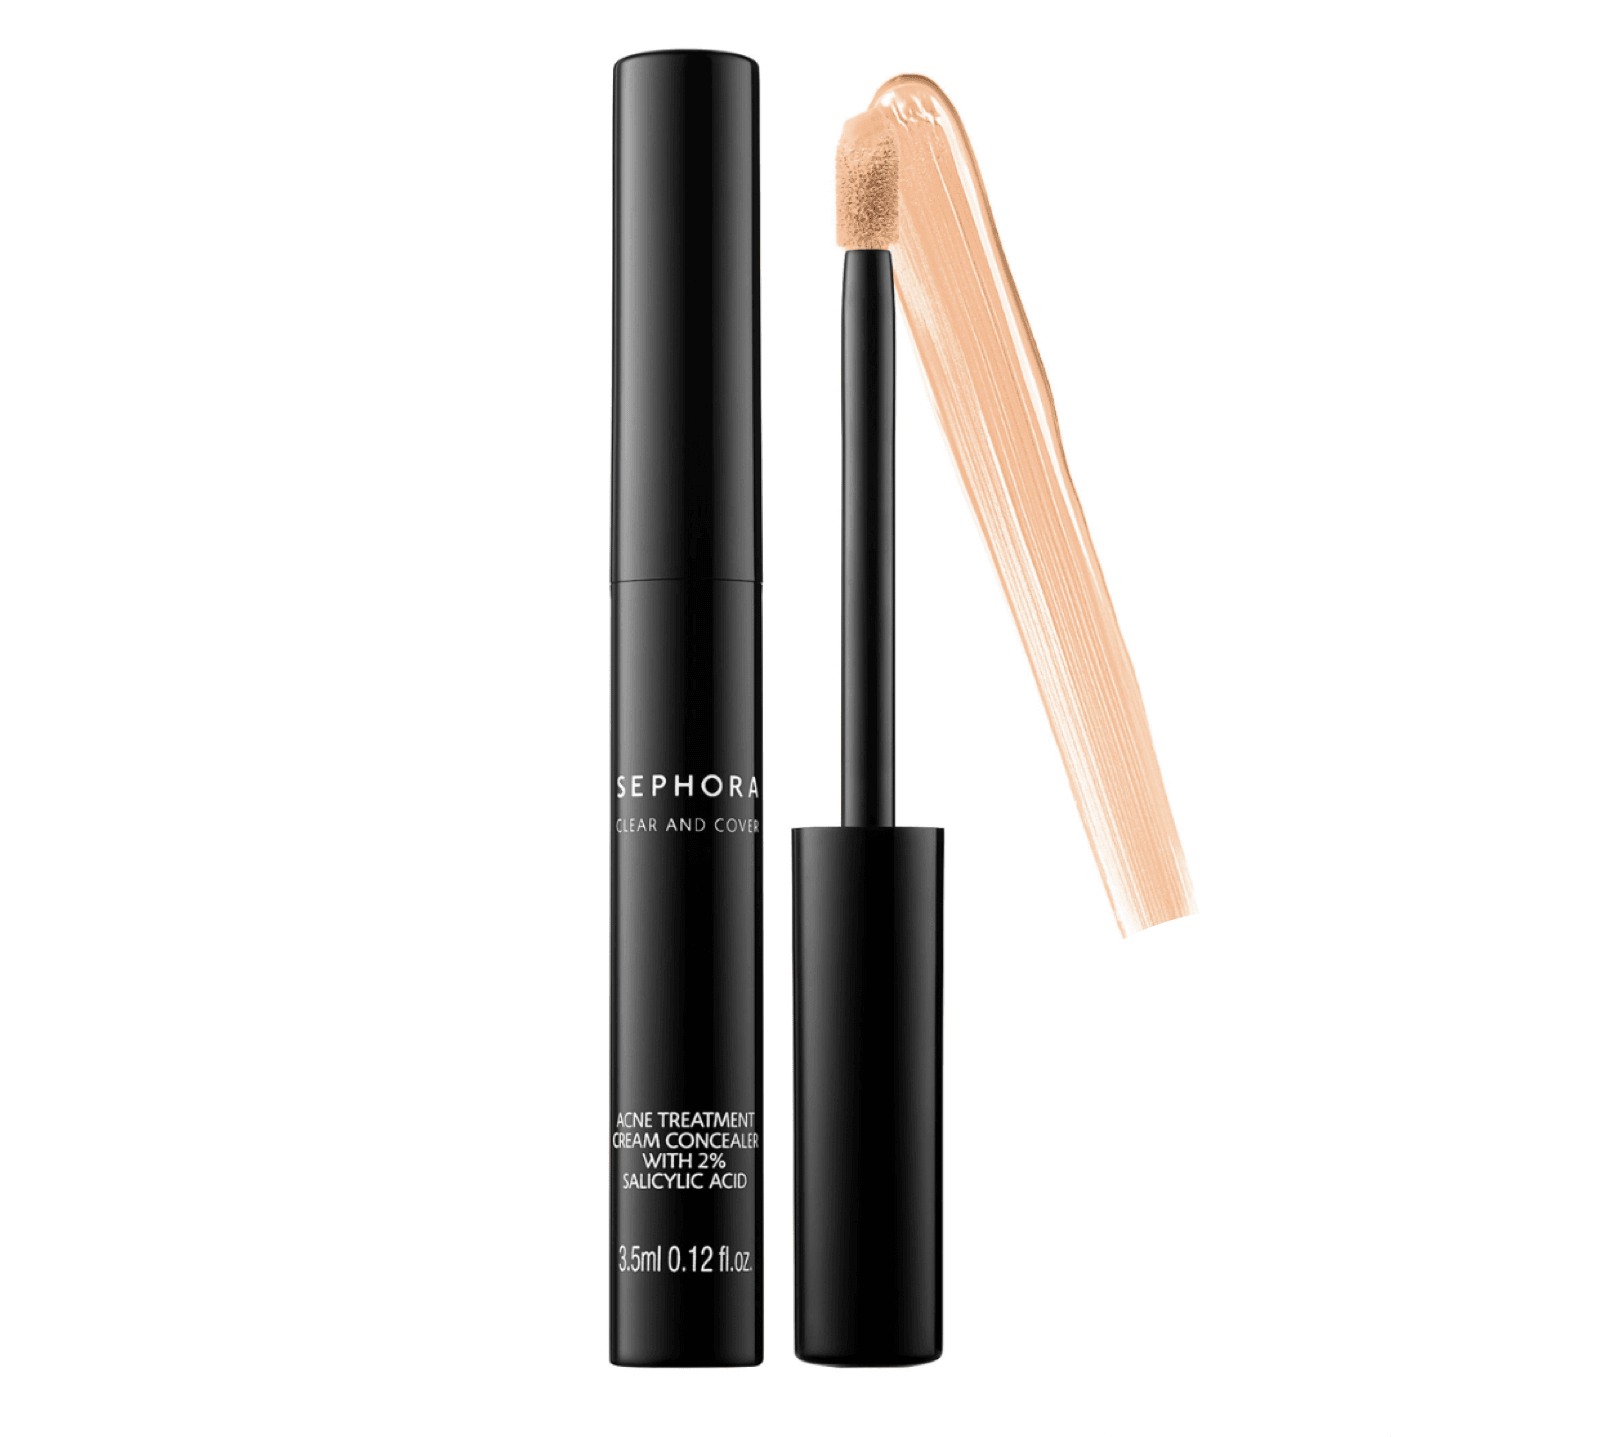 Sephora Collection Clear and Cover Acne Treatment Cream Concealer